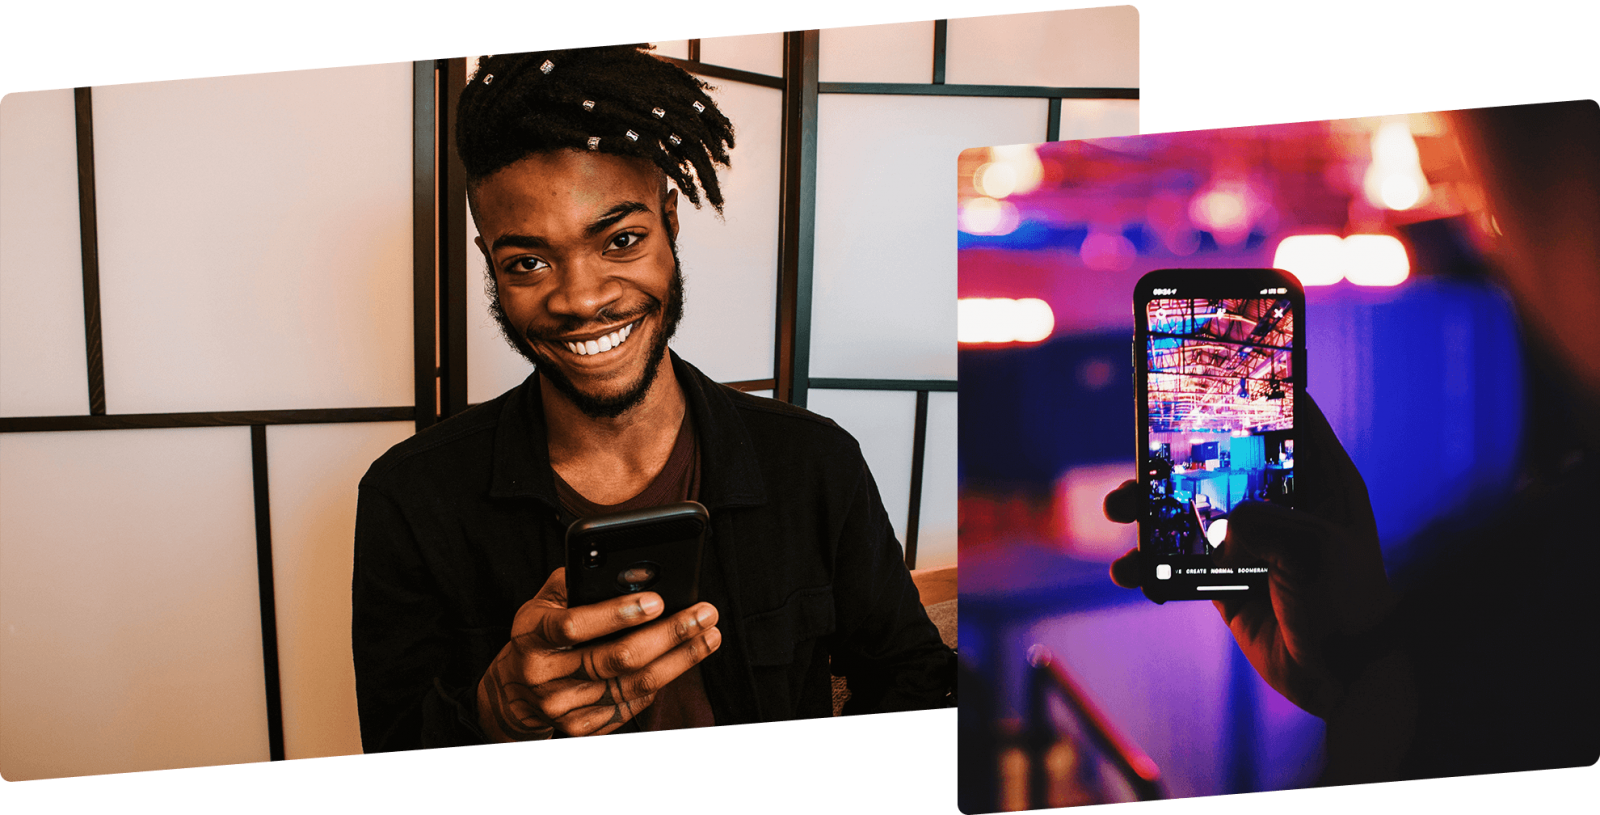 photo on left shows man holding phone and smiling at camera; photo on right shows phone in use, taking a photo inside a colourfully lit room